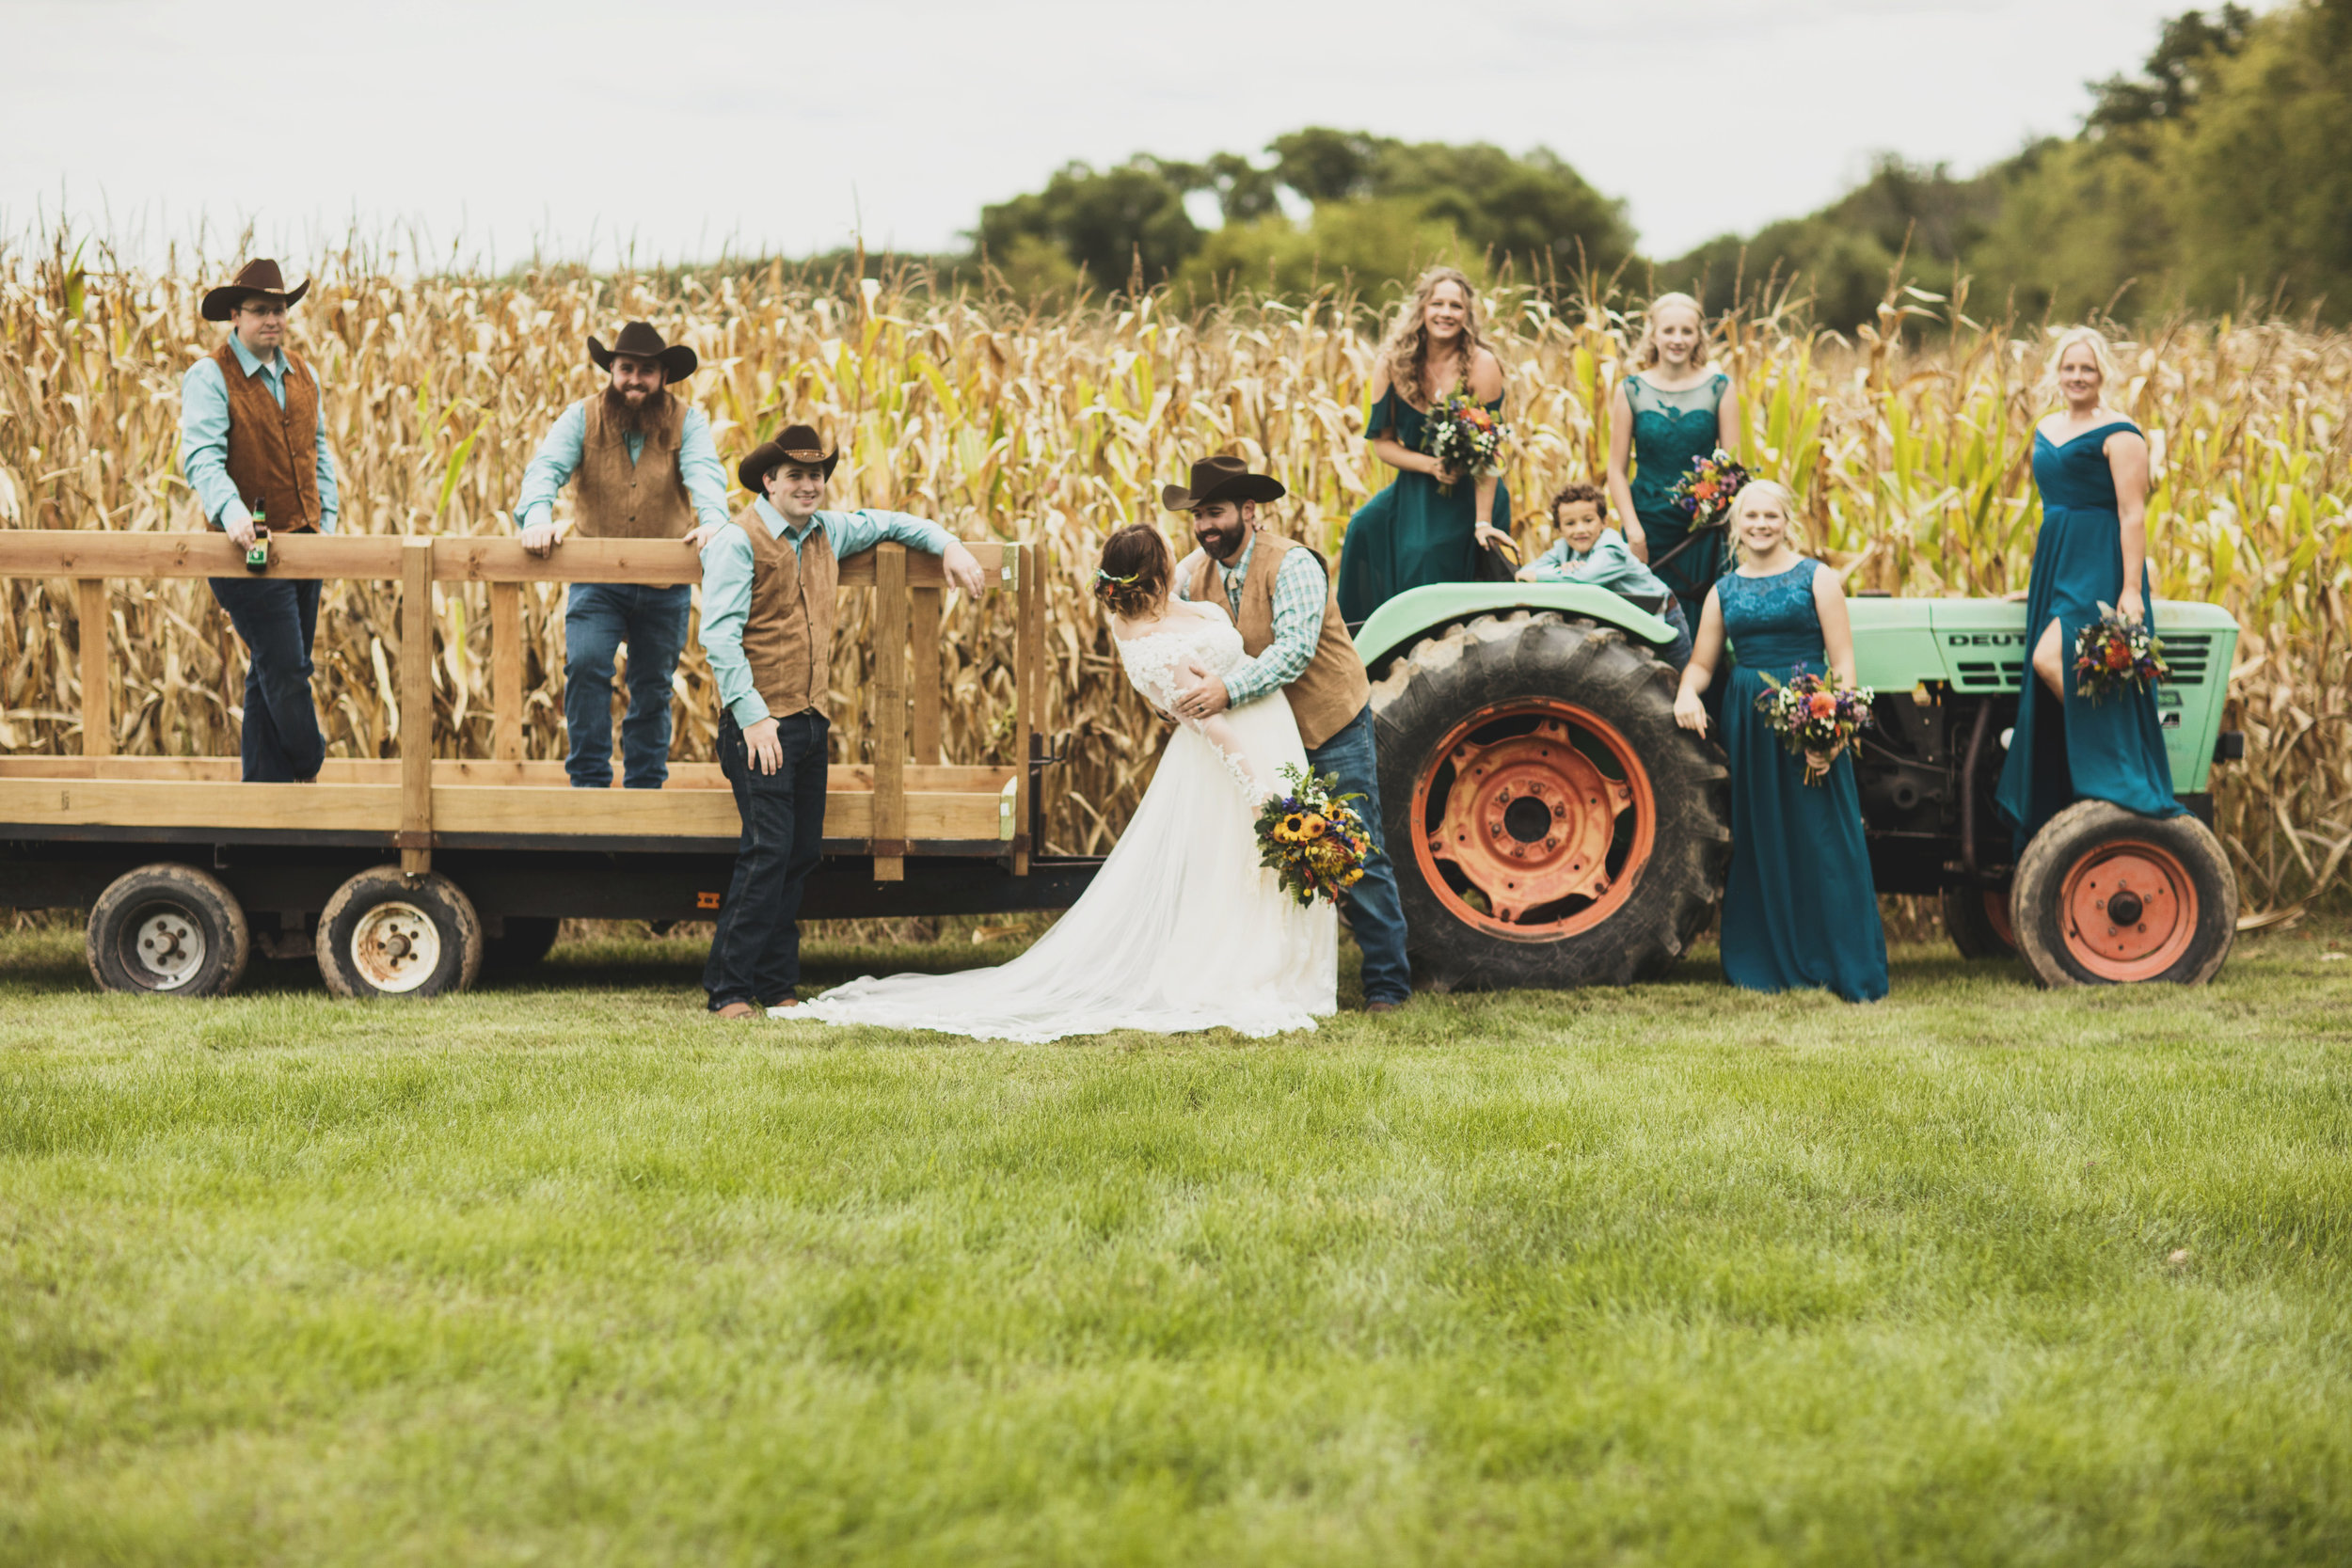 Bridal Party Poses with Tractor at Barn Wedding Venue